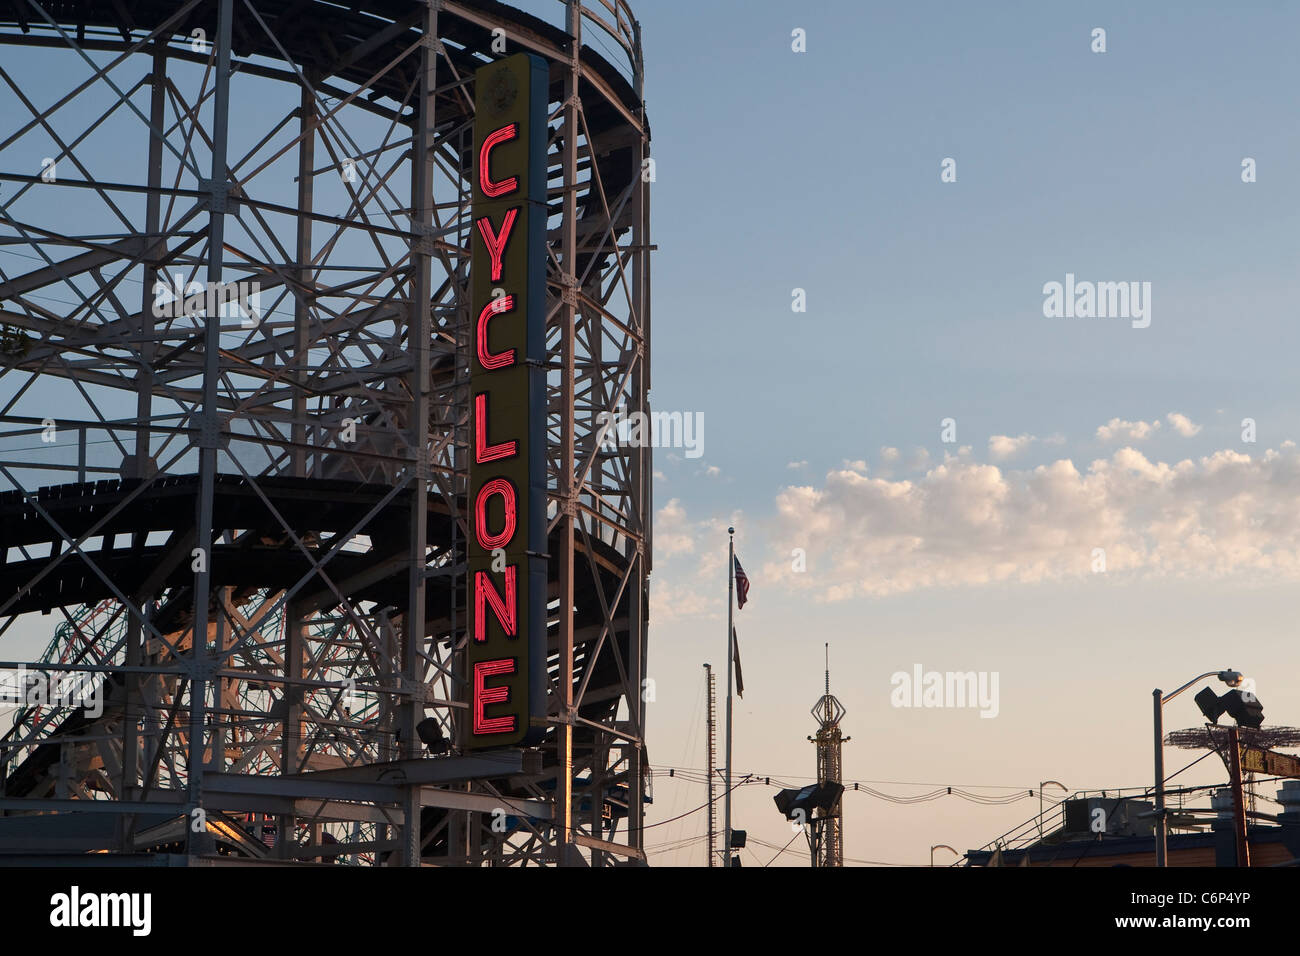 The sun set on the Coney Island Cyclone roller coster on Coney Island in New York city borough of Brooklyn - Stock Image